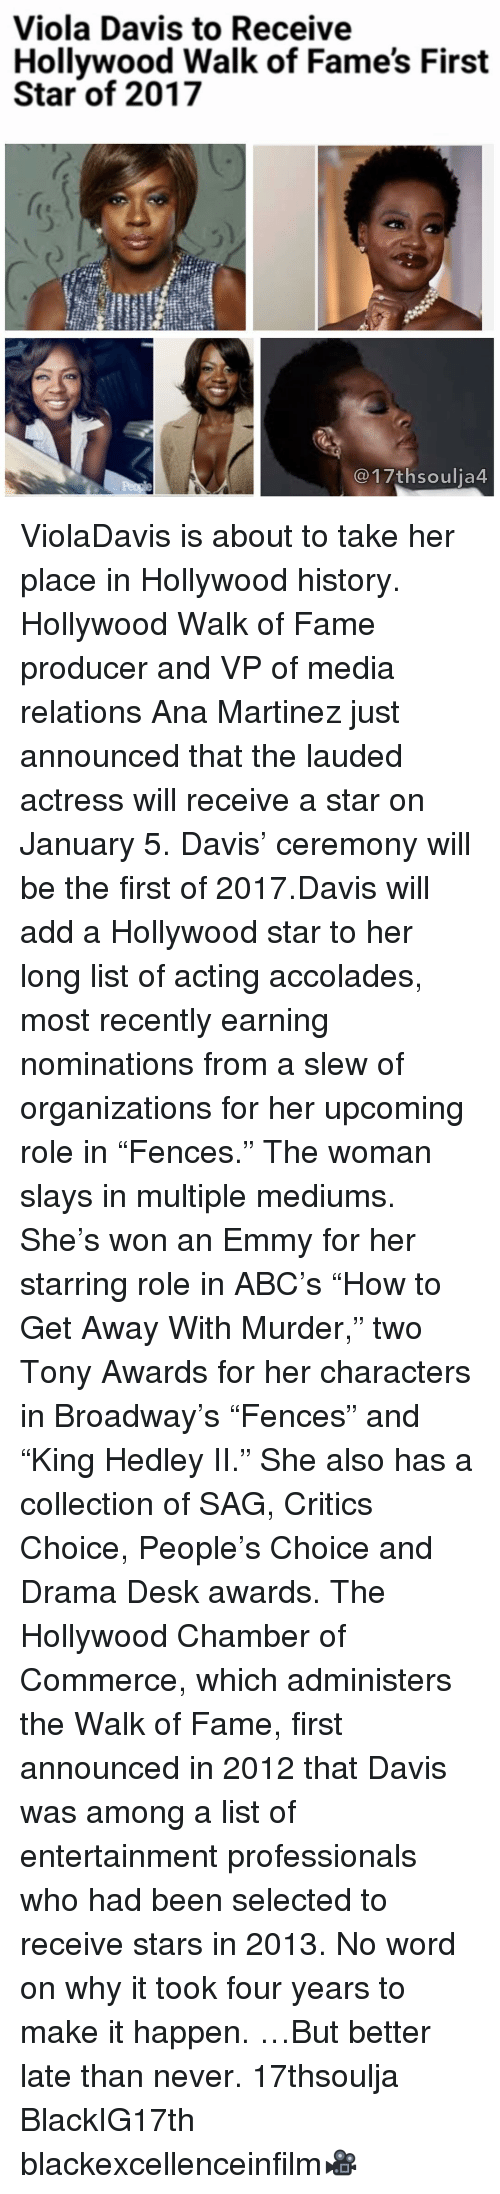 "Abc, Memes, and Desk: Viola Davis to Receive  Hollywood Walk of Fame's First  Star of 2017  17th soulia4 ViolaDavis is about to take her place in Hollywood history. Hollywood Walk of Fame producer and VP of media relations Ana Martinez just announced that the lauded actress will receive a star on January 5. Davis' ceremony will be the first of 2017.Davis will add a Hollywood star to her long list of acting accolades, most recently earning nominations from a slew of organizations for her upcoming role in ""Fences."" The woman slays in multiple mediums. She's won an Emmy for her starring role in ABC's ""How to Get Away With Murder,"" two Tony Awards for her characters in Broadway's ""Fences"" and ""King Hedley II."" She also has a collection of SAG, Critics Choice, People's Choice and Drama Desk awards. The Hollywood Chamber of Commerce, which administers the Walk of Fame, first announced in 2012 that Davis was among a list of entertainment professionals who had been selected to receive stars in 2013. No word on why it took four years to make it happen. …But better late than never. 17thsoulja BlackIG17th blackexcellenceinfilm🎥"